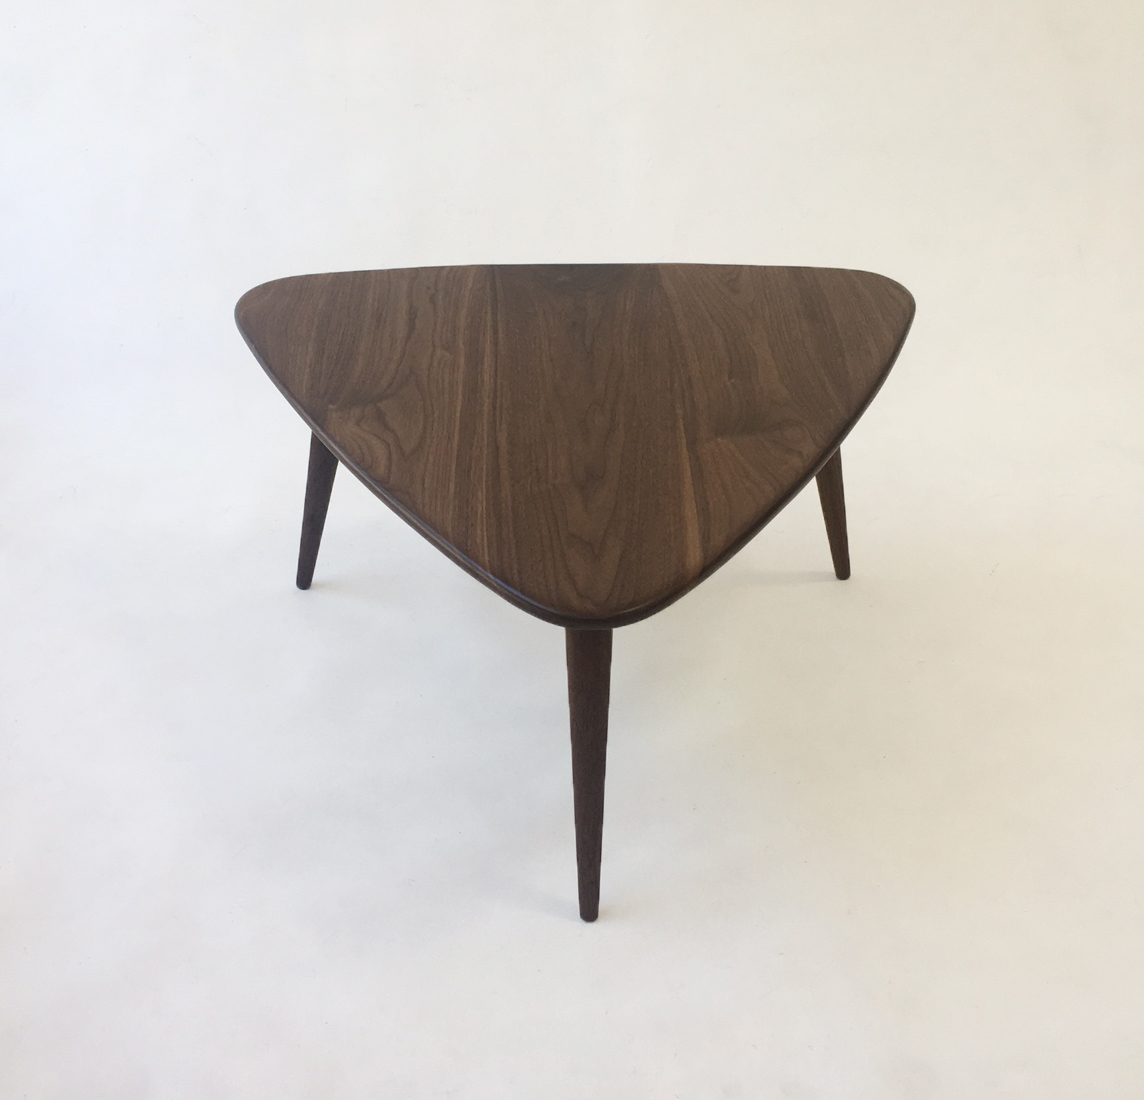 walnut guitar pick side table u2013 midcentury modern u2013 atomic era design in solid walnut with solid walnut tapered legs